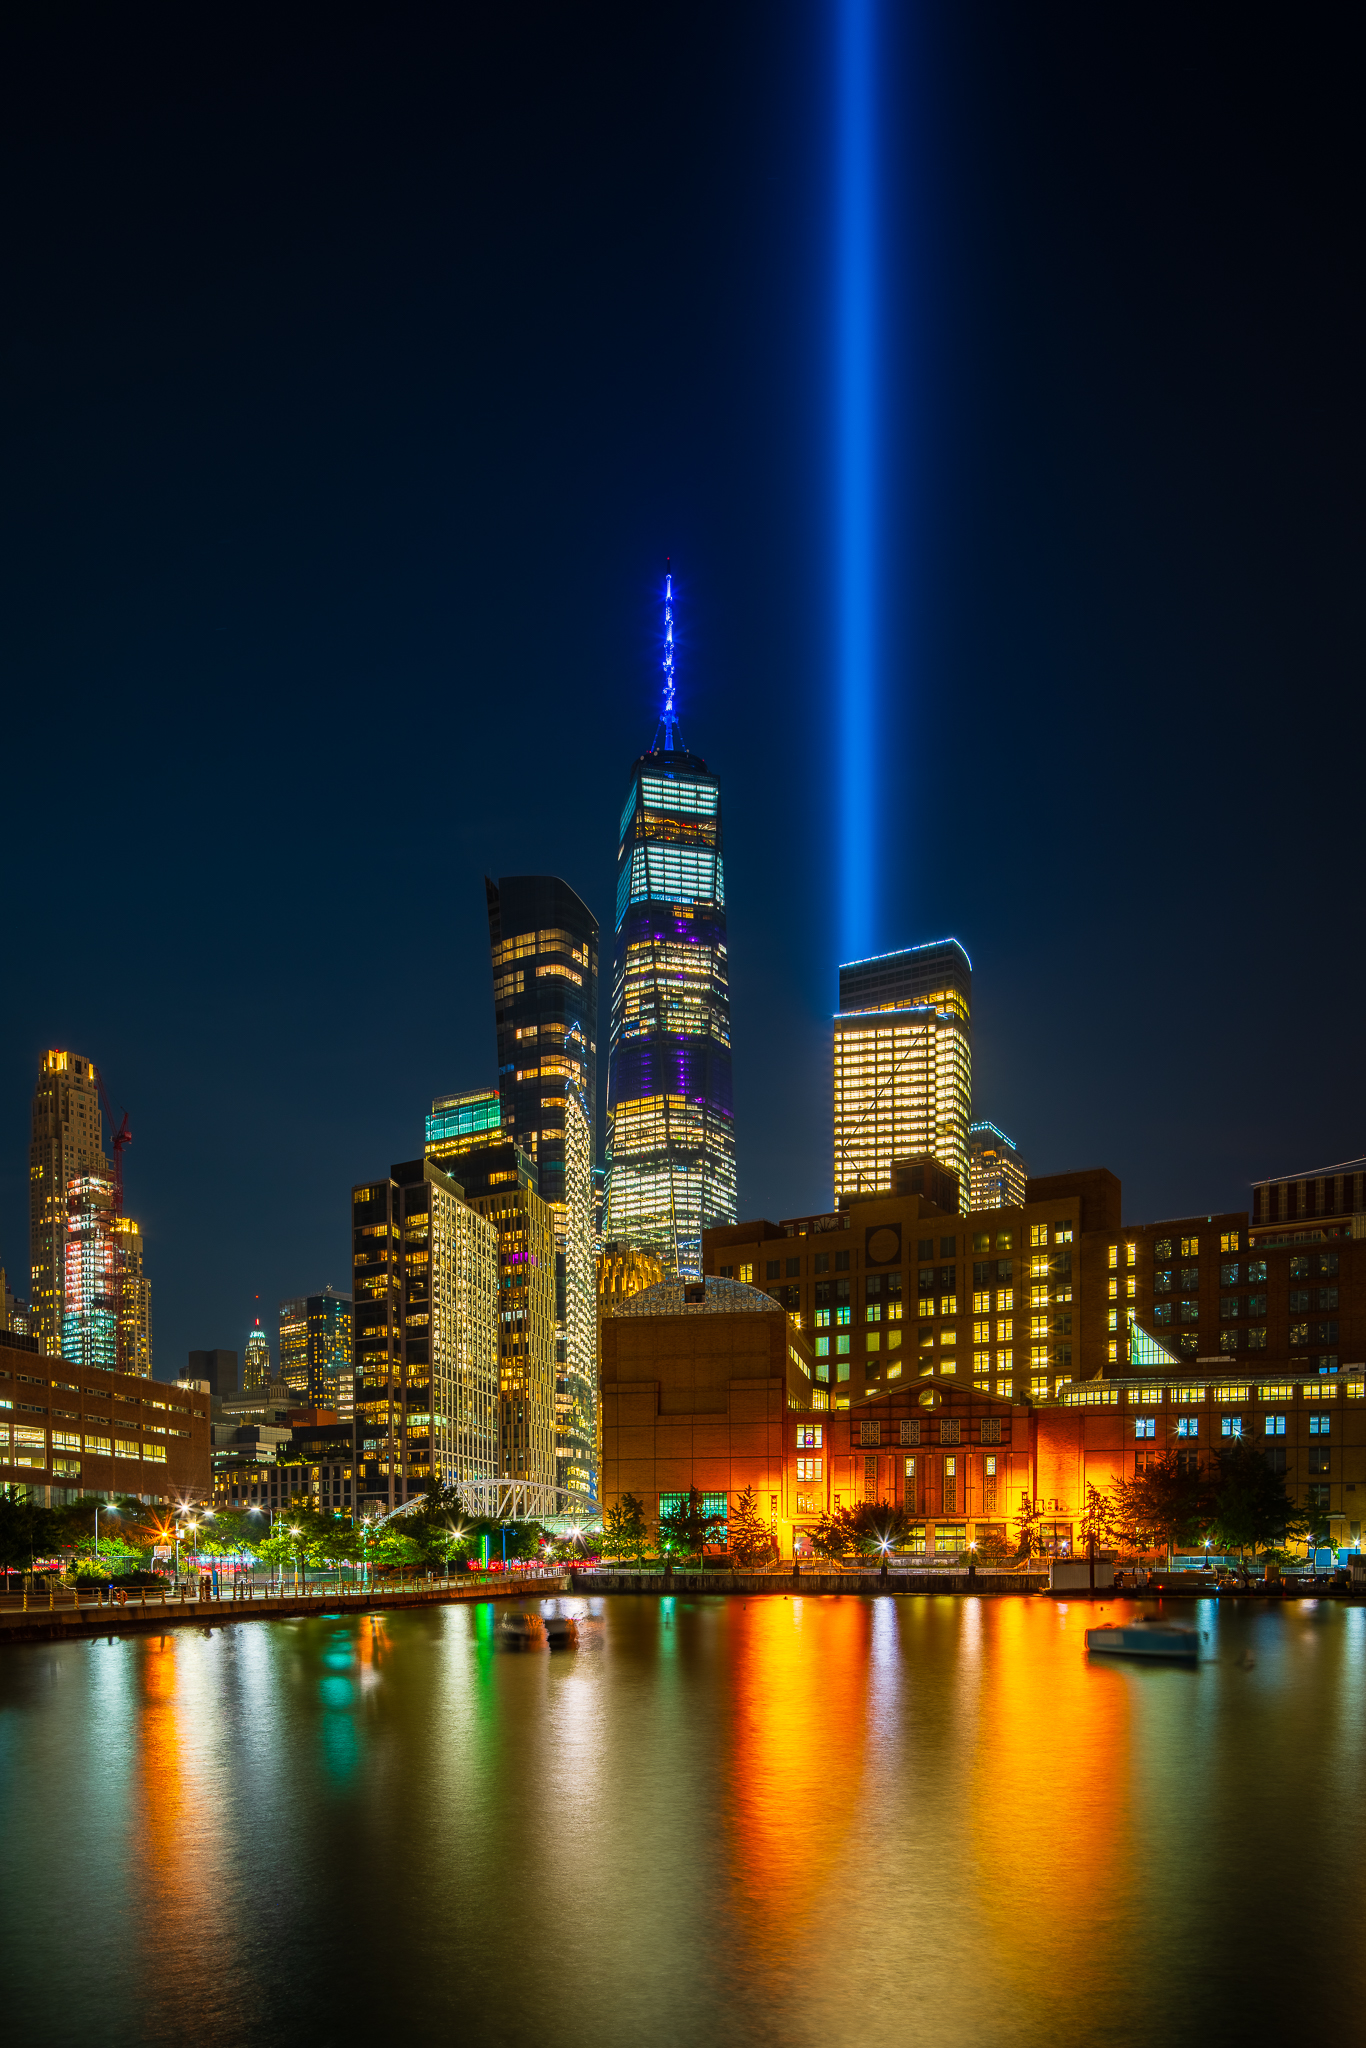 a photo of 9/11 tribute lights from the new york side of the river